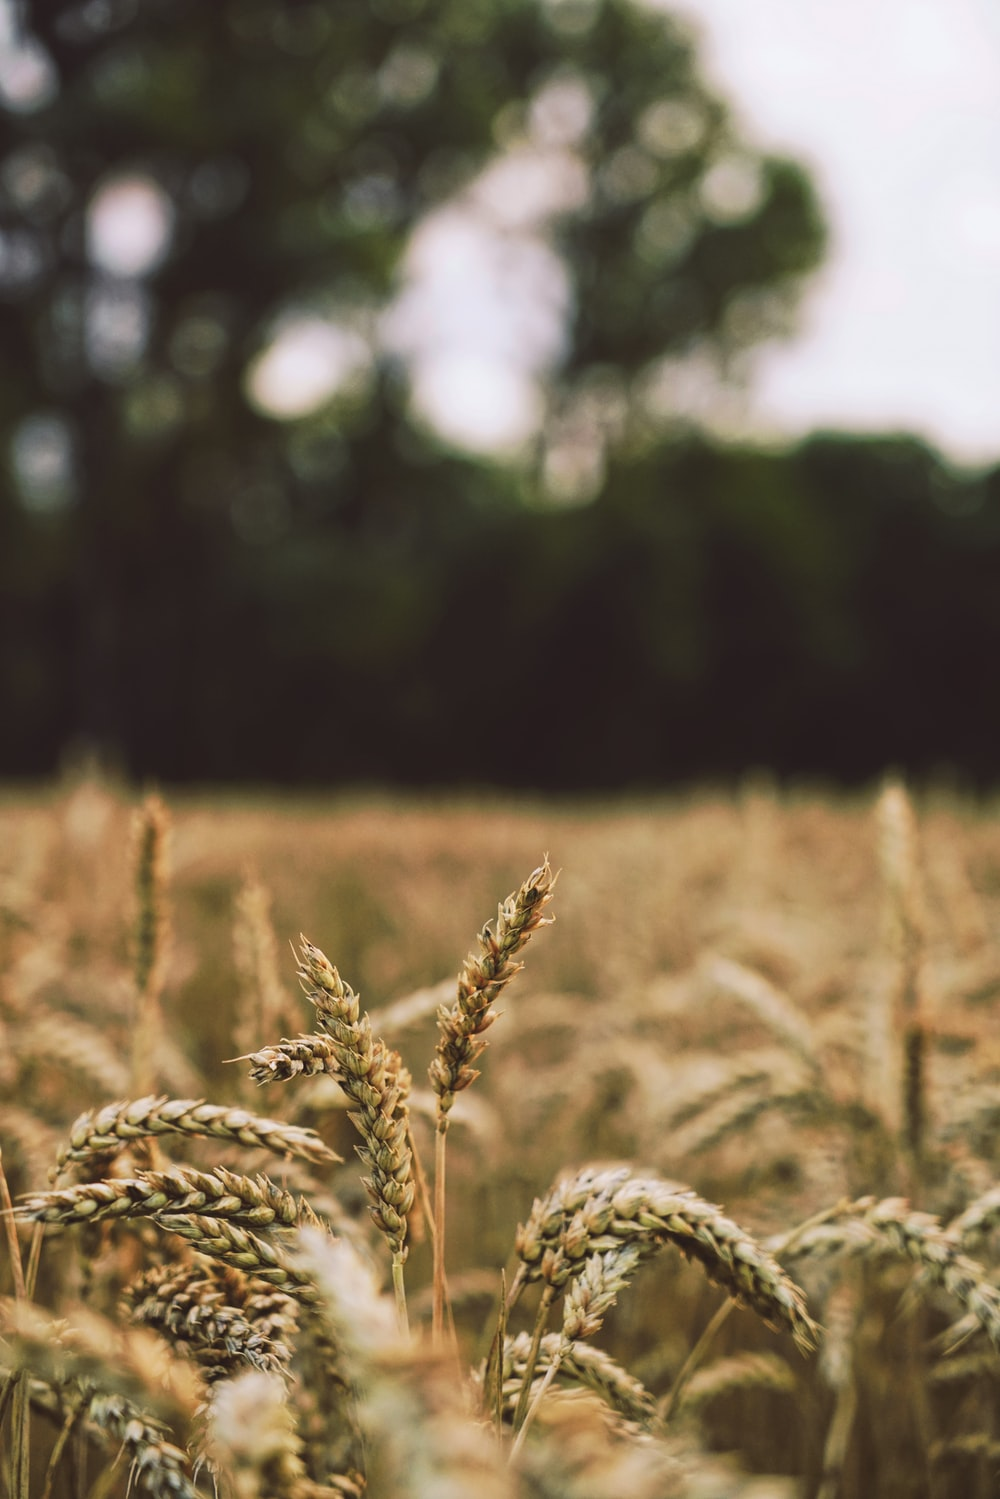 shallow focus photography of wheats during daytime